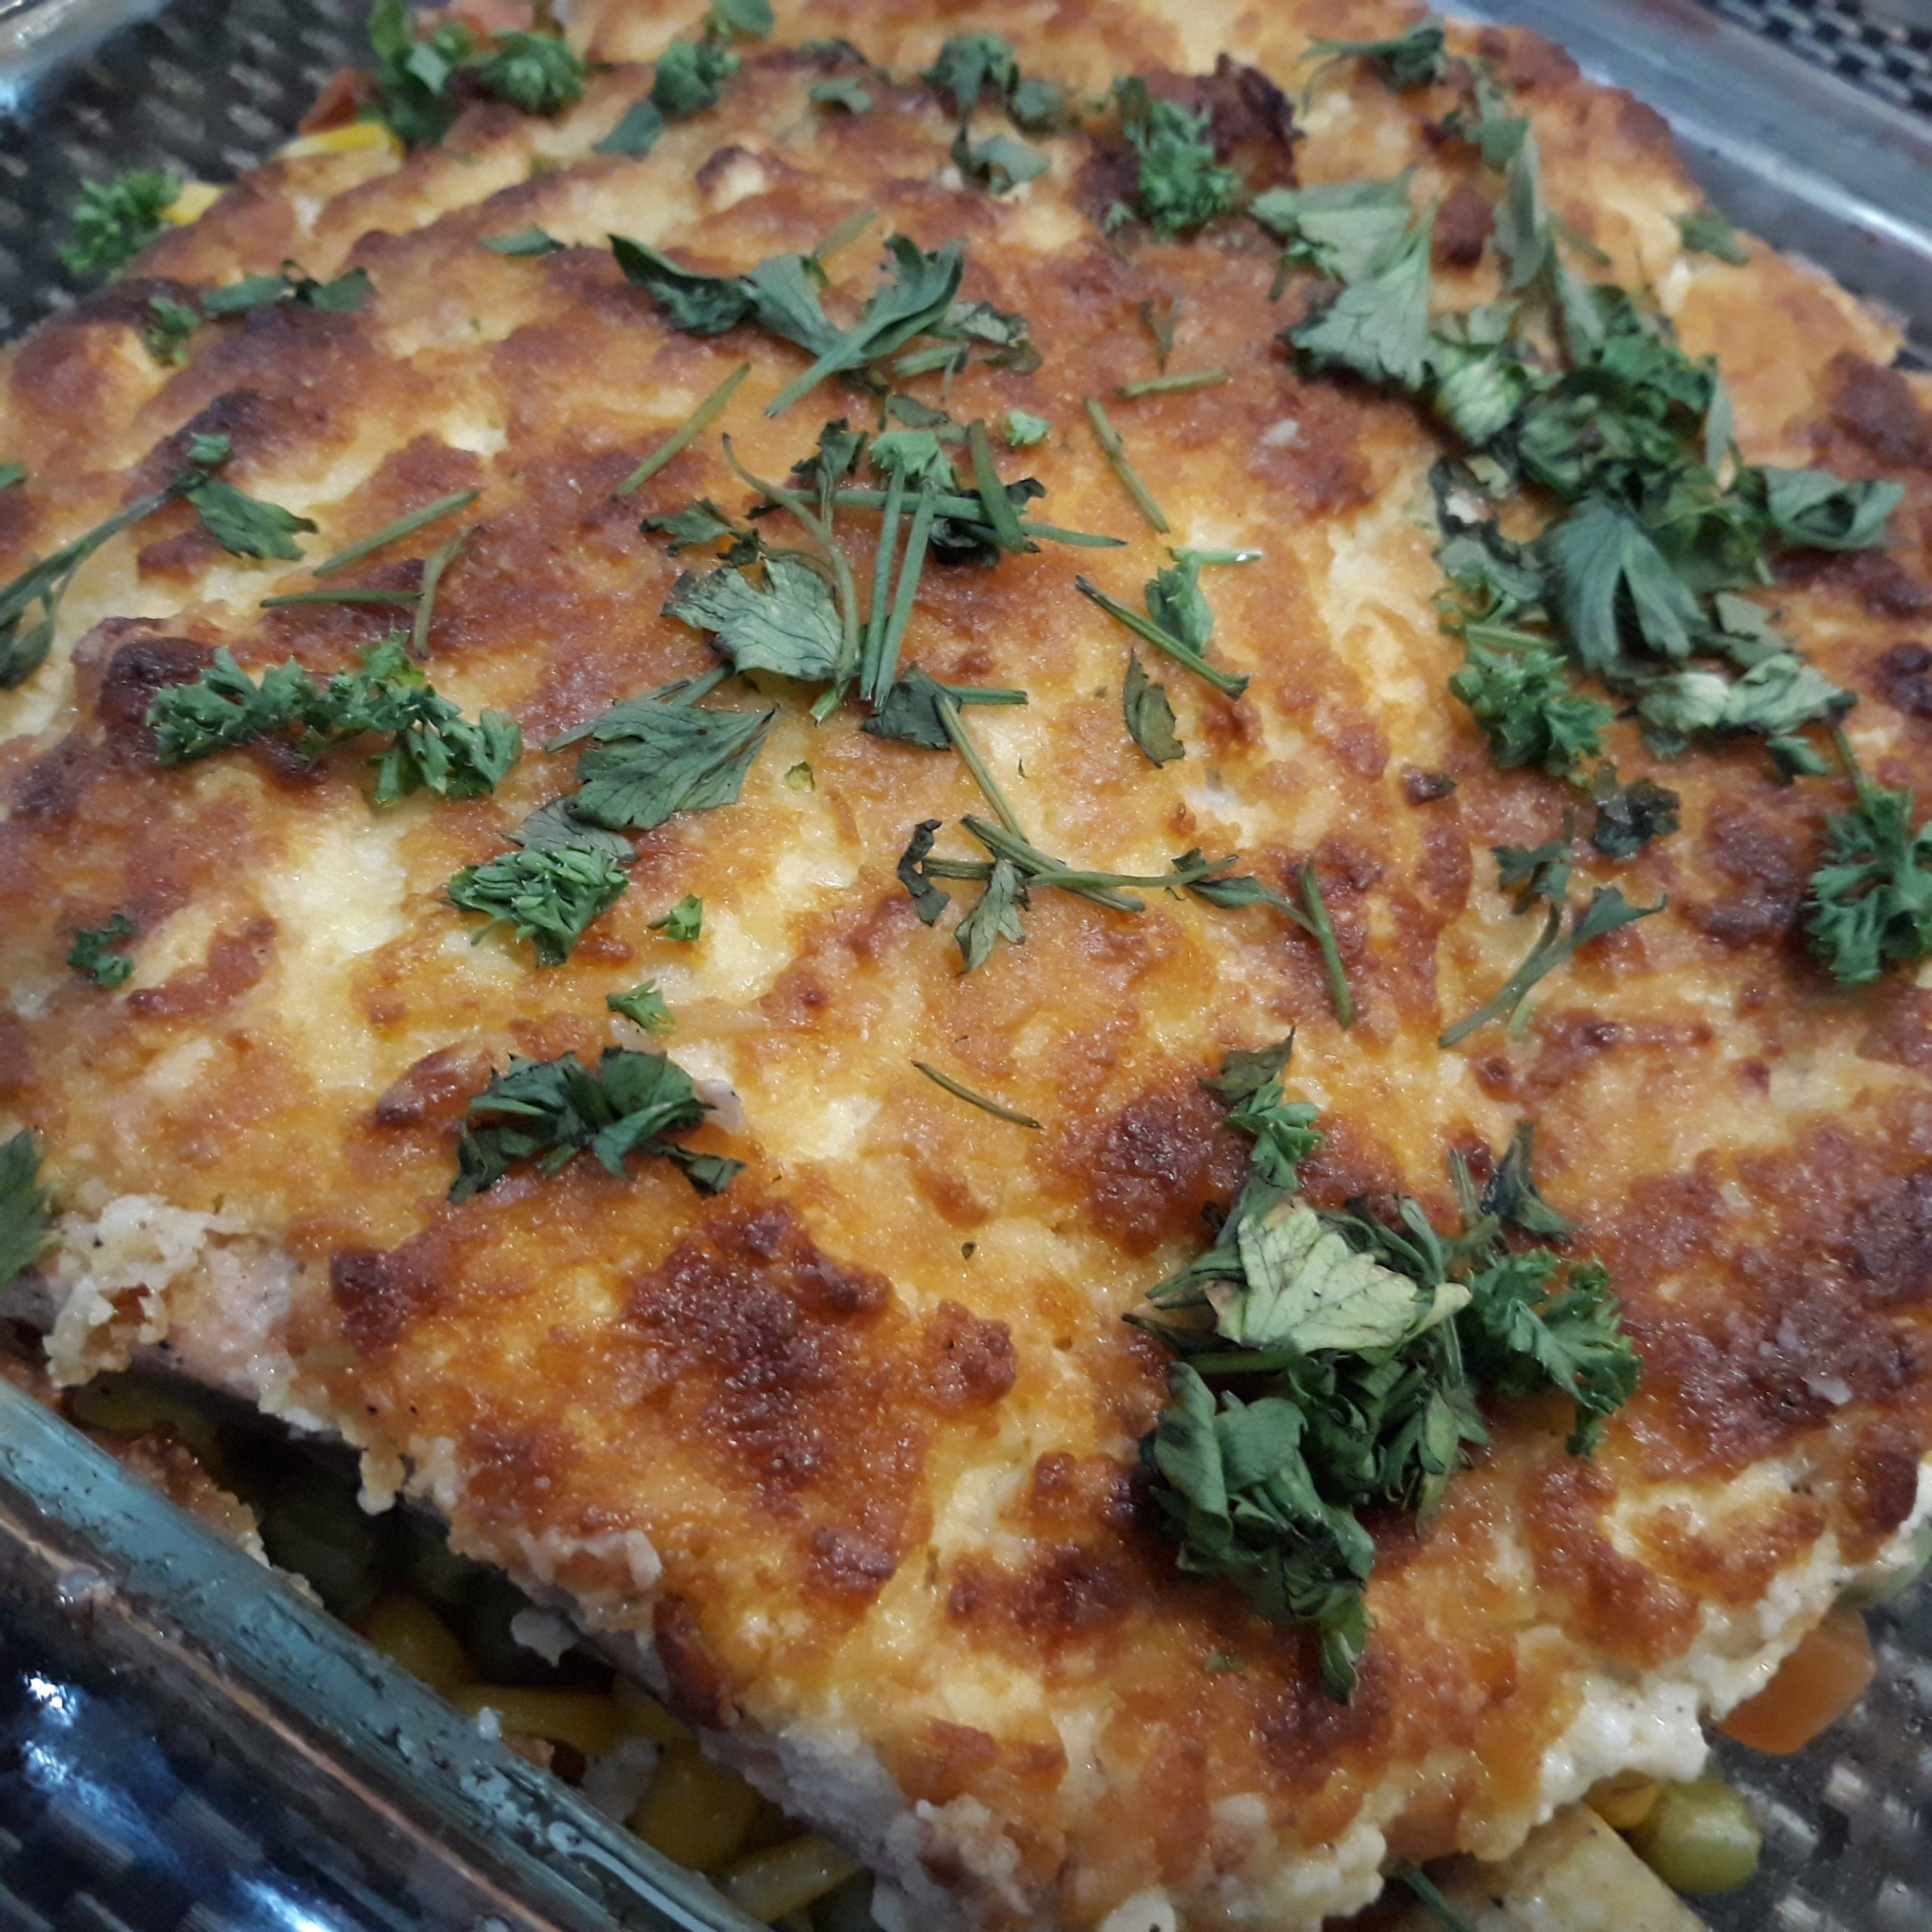 Baked salmon ala Contis topped with parsley.